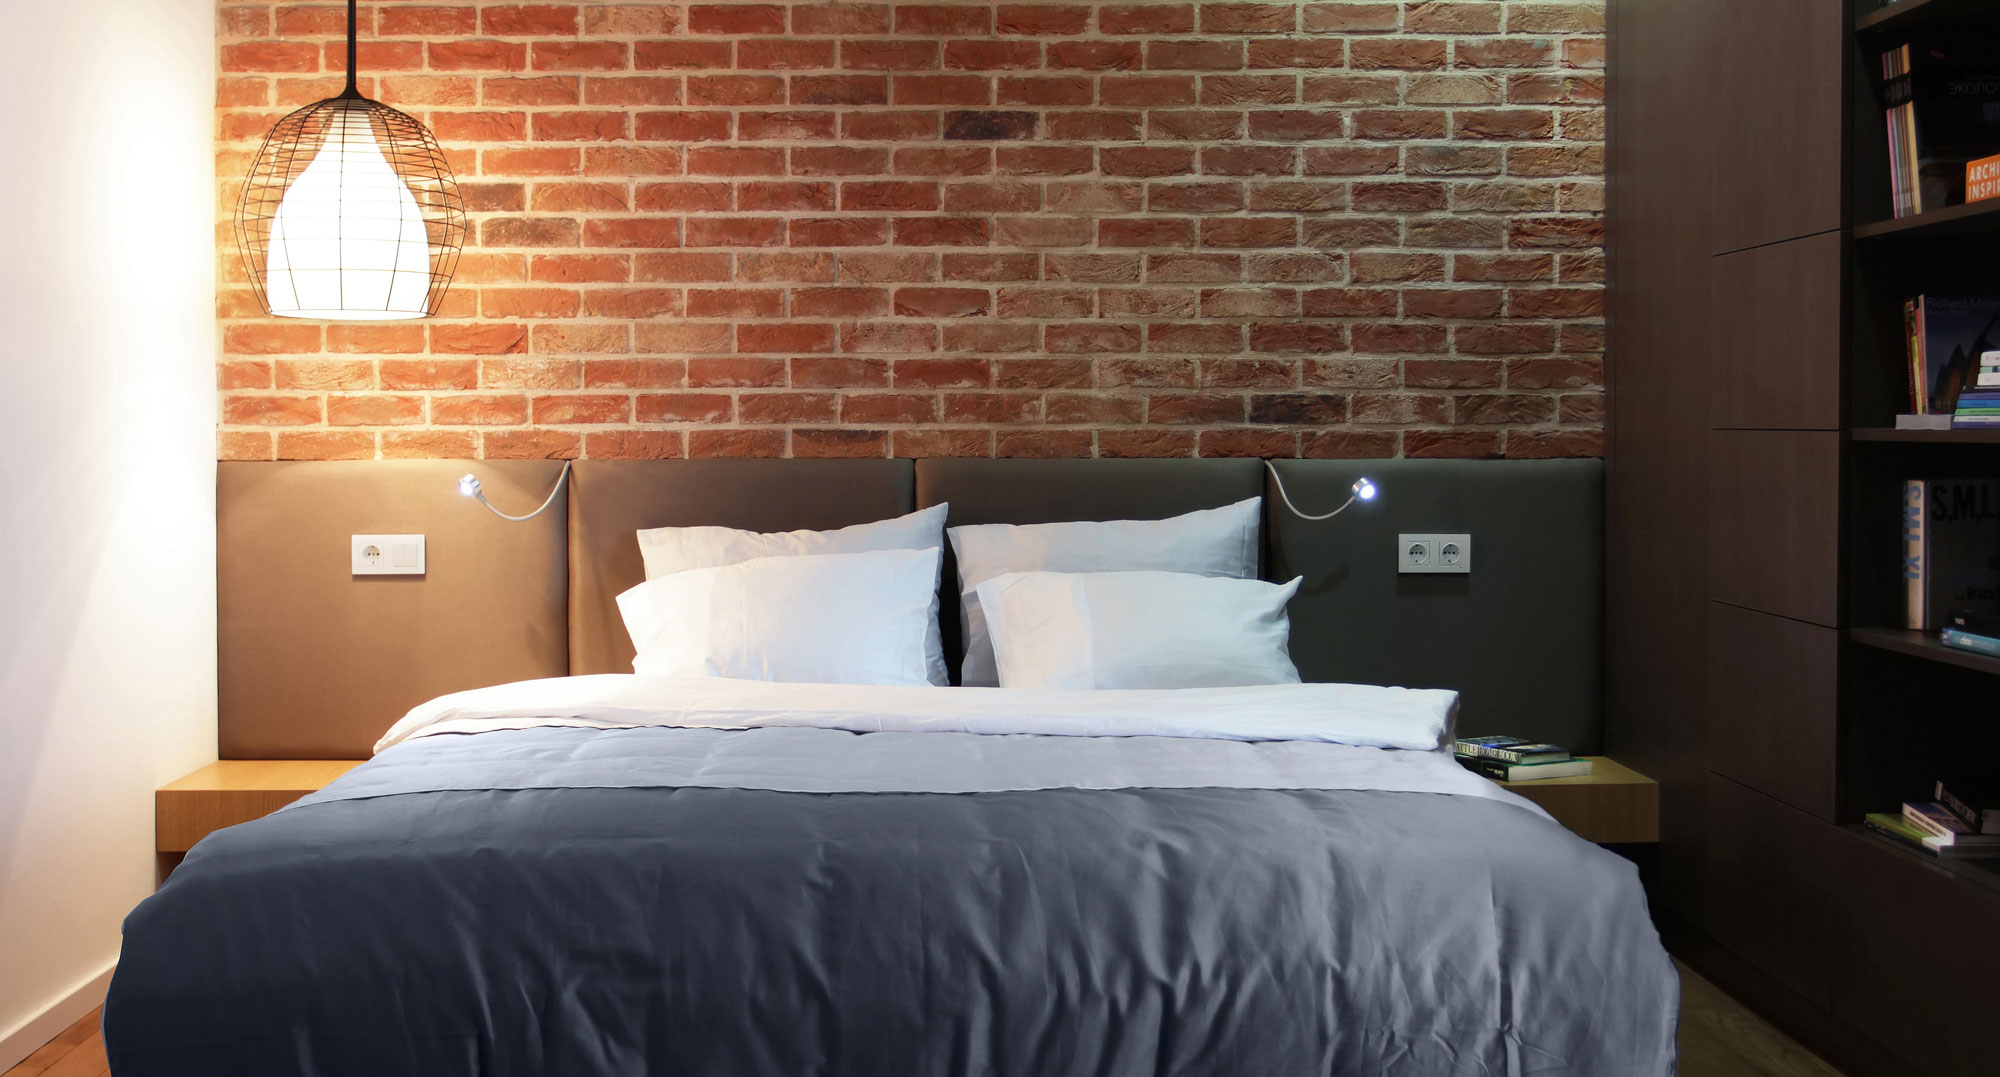 Outstanding Apartment Interior with Exposed Brick Walls